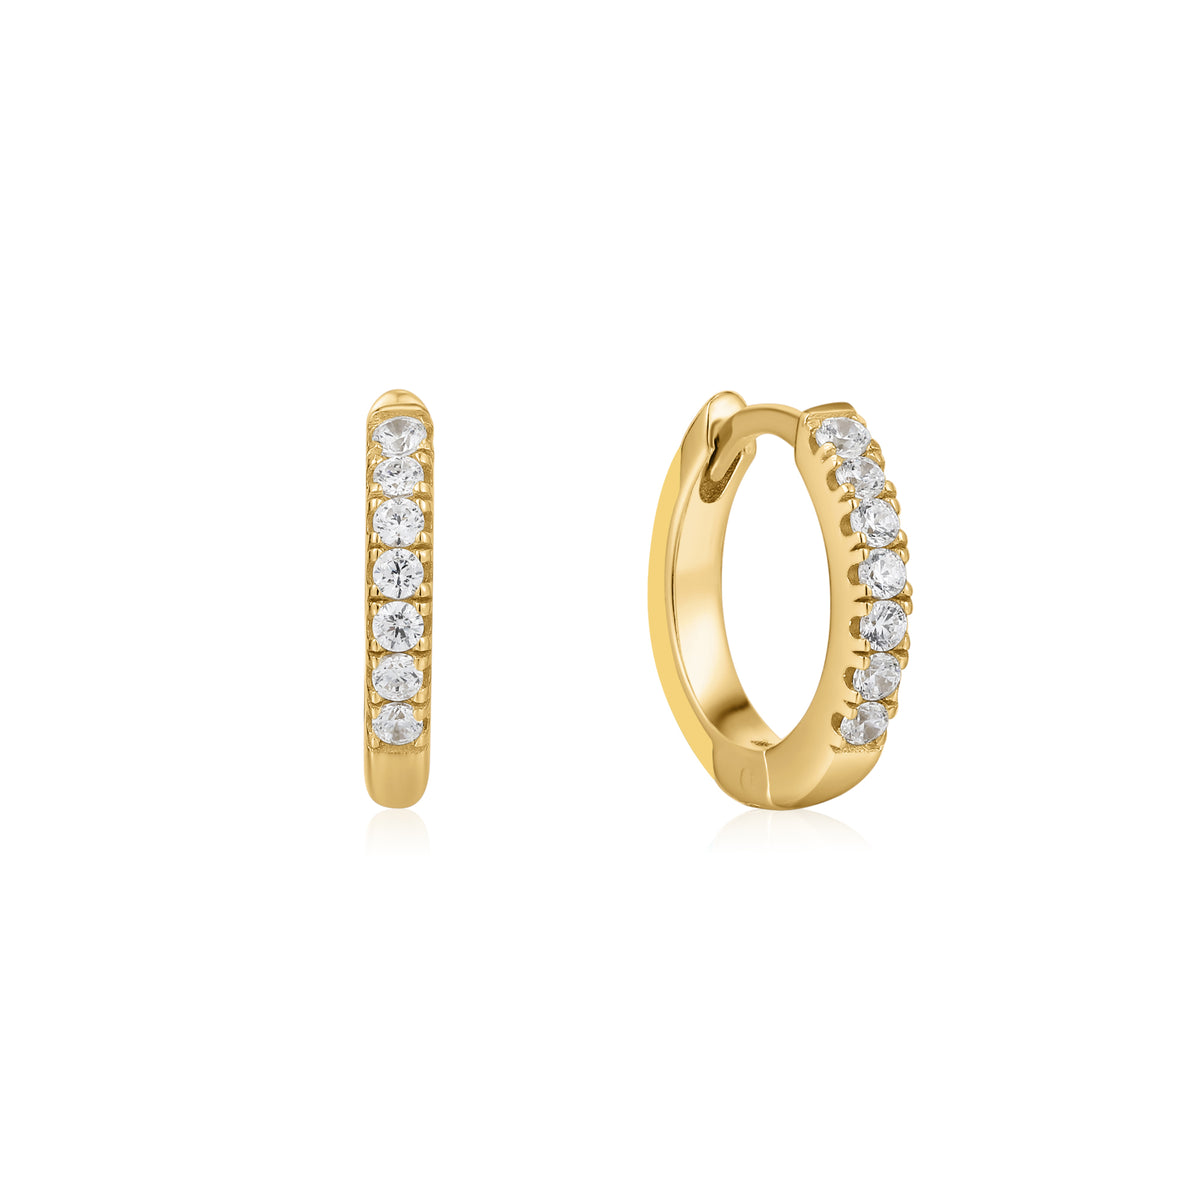 Cardea | Portobello Earrings | 925 Silver | Yellow Enamel & White CZ | 14K Gold Plated